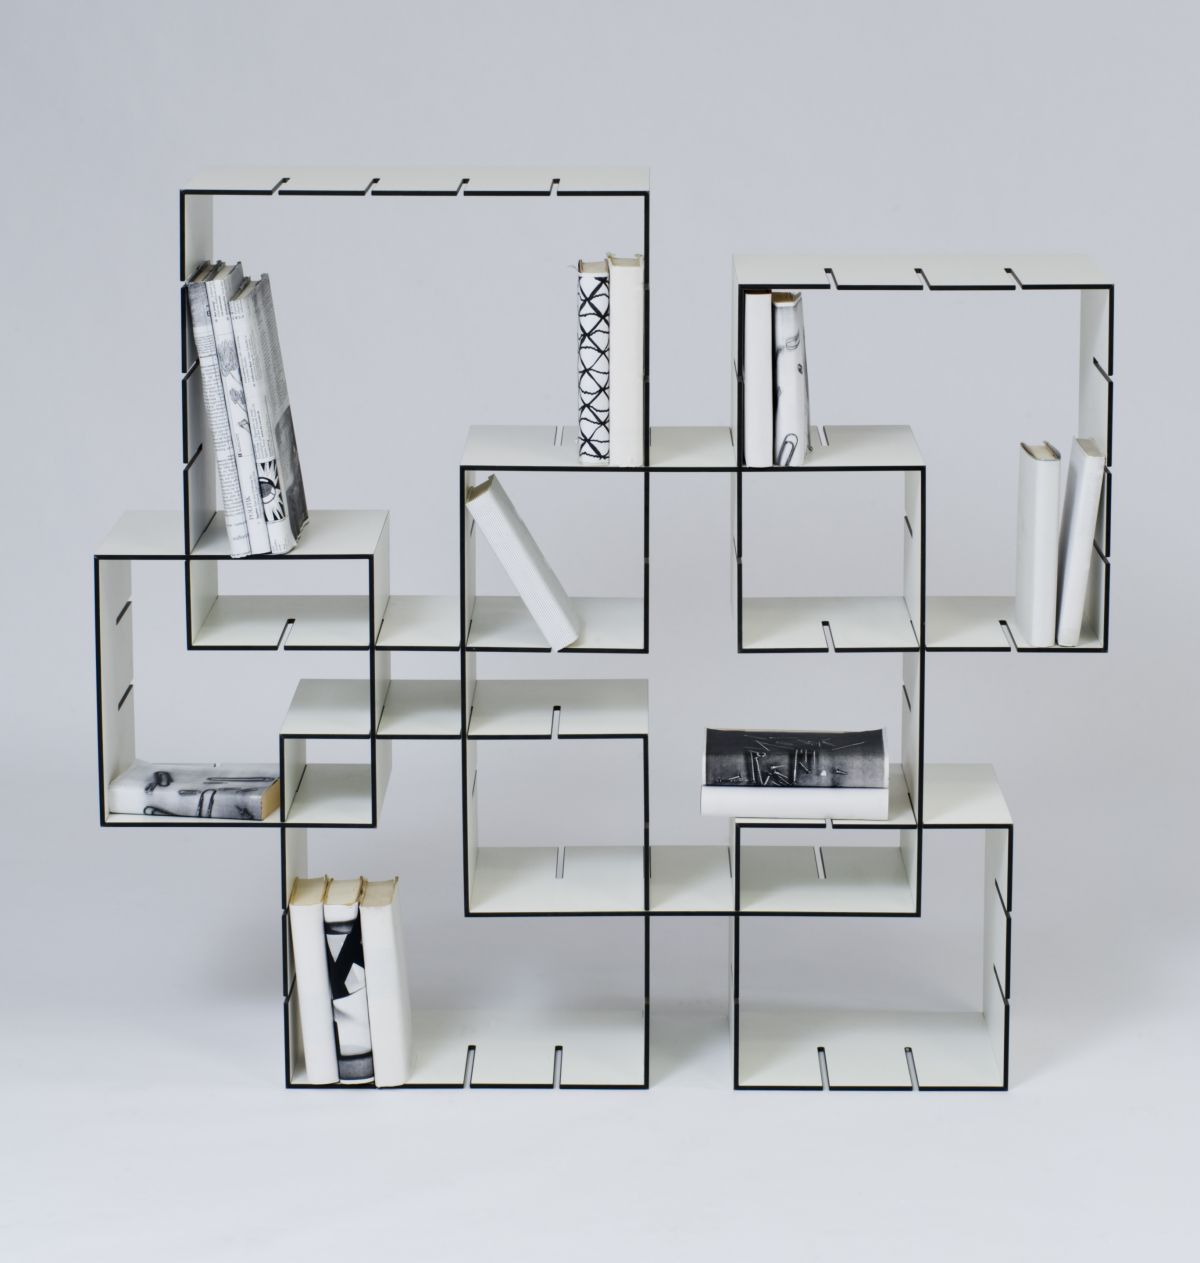 Estanteria Libros Vertical Konnex Shelf Design By Florian Gross Taller Vertical